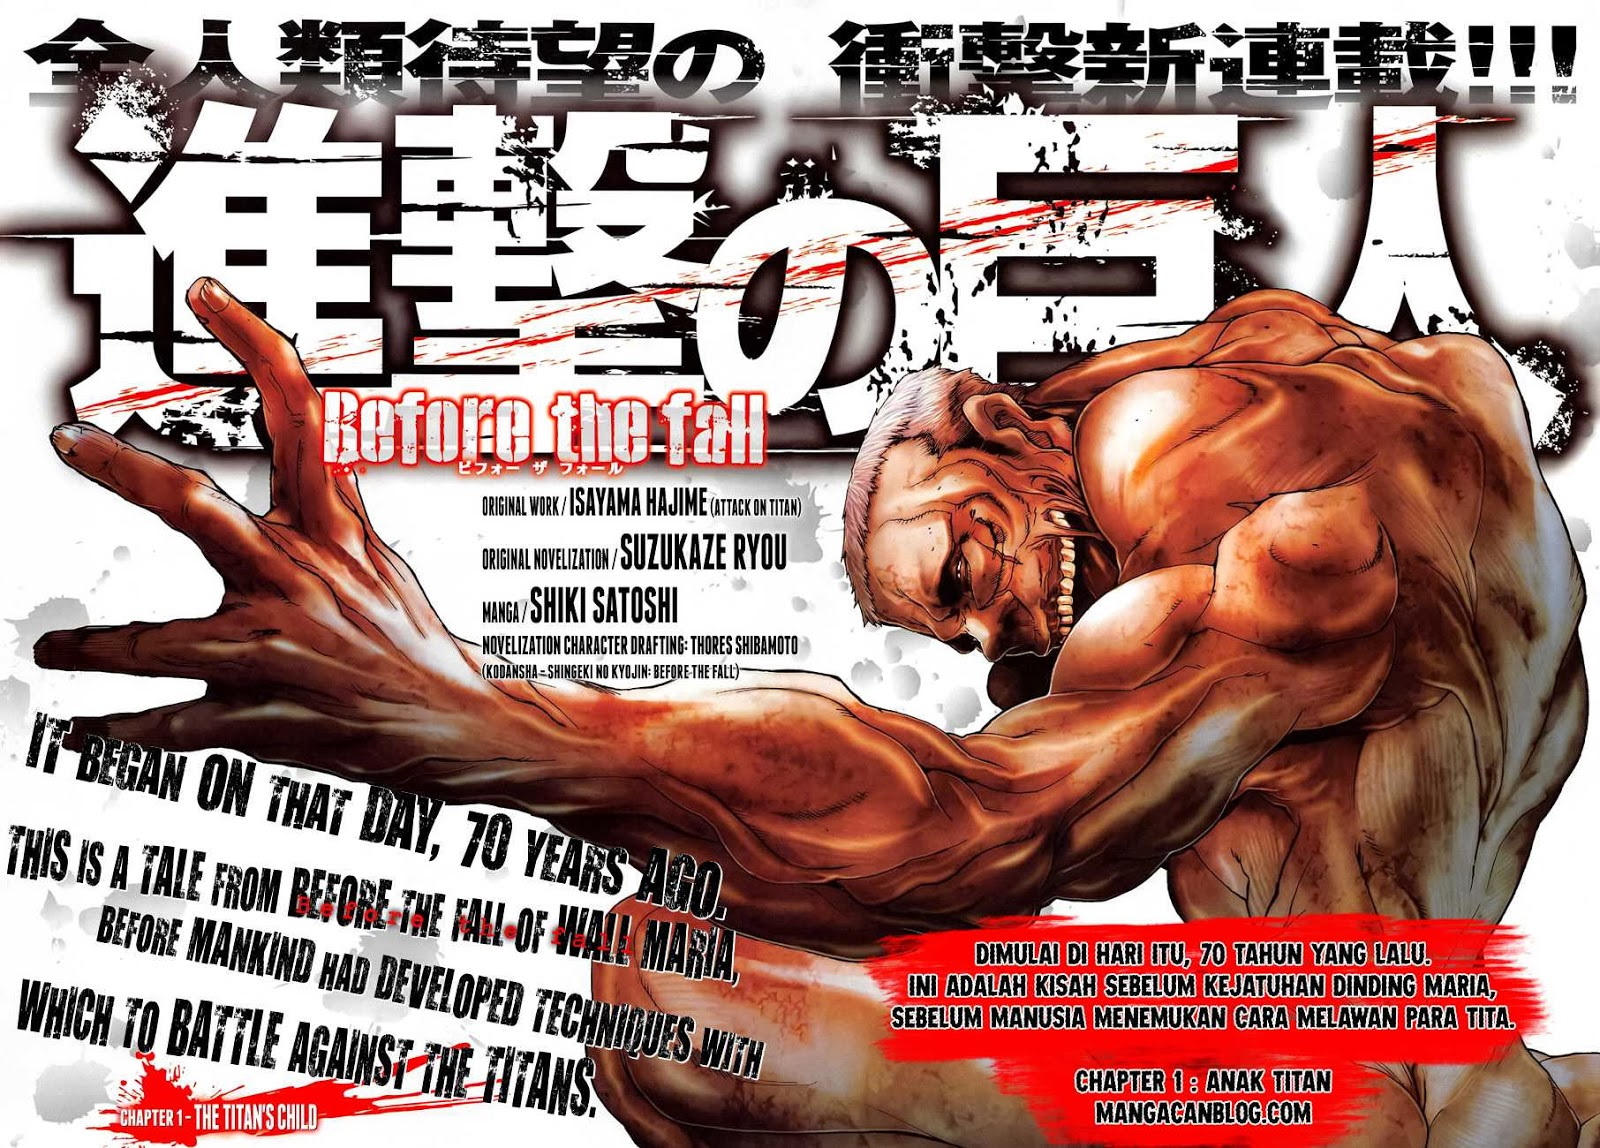 Dilarang COPAS - situs resmi www.mangacanblog.com - Komik attack on titan before the fall 001 - anak titan 2 Indonesia attack on titan before the fall 001 - anak titan Terbaru 1|Baca Manga Komik Indonesia|Mangacan